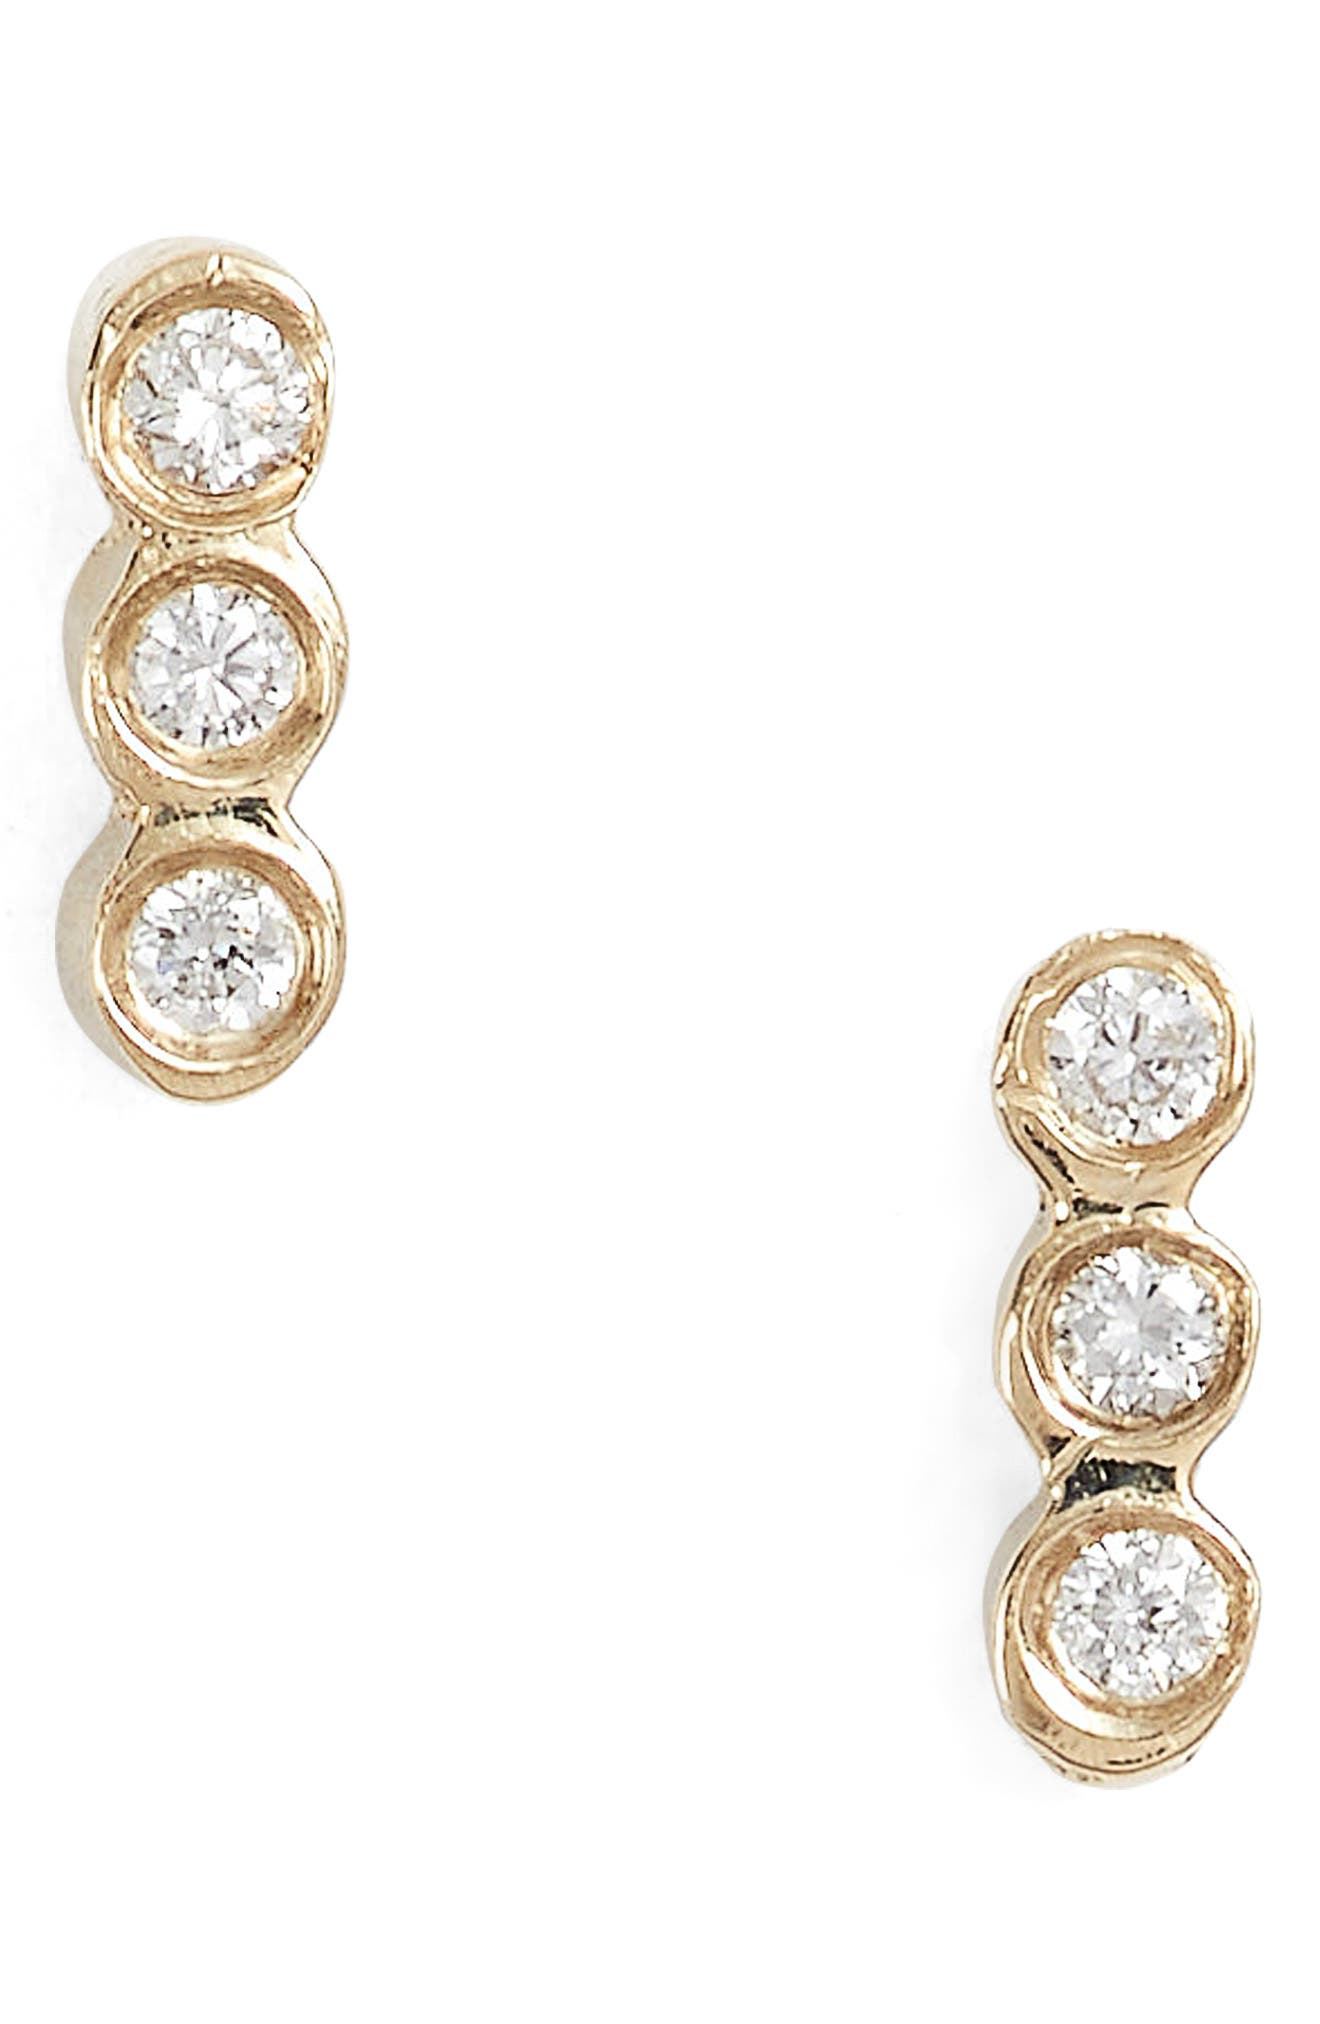 Zoë Chicco Diamond Bezel Bar Stud Earrings